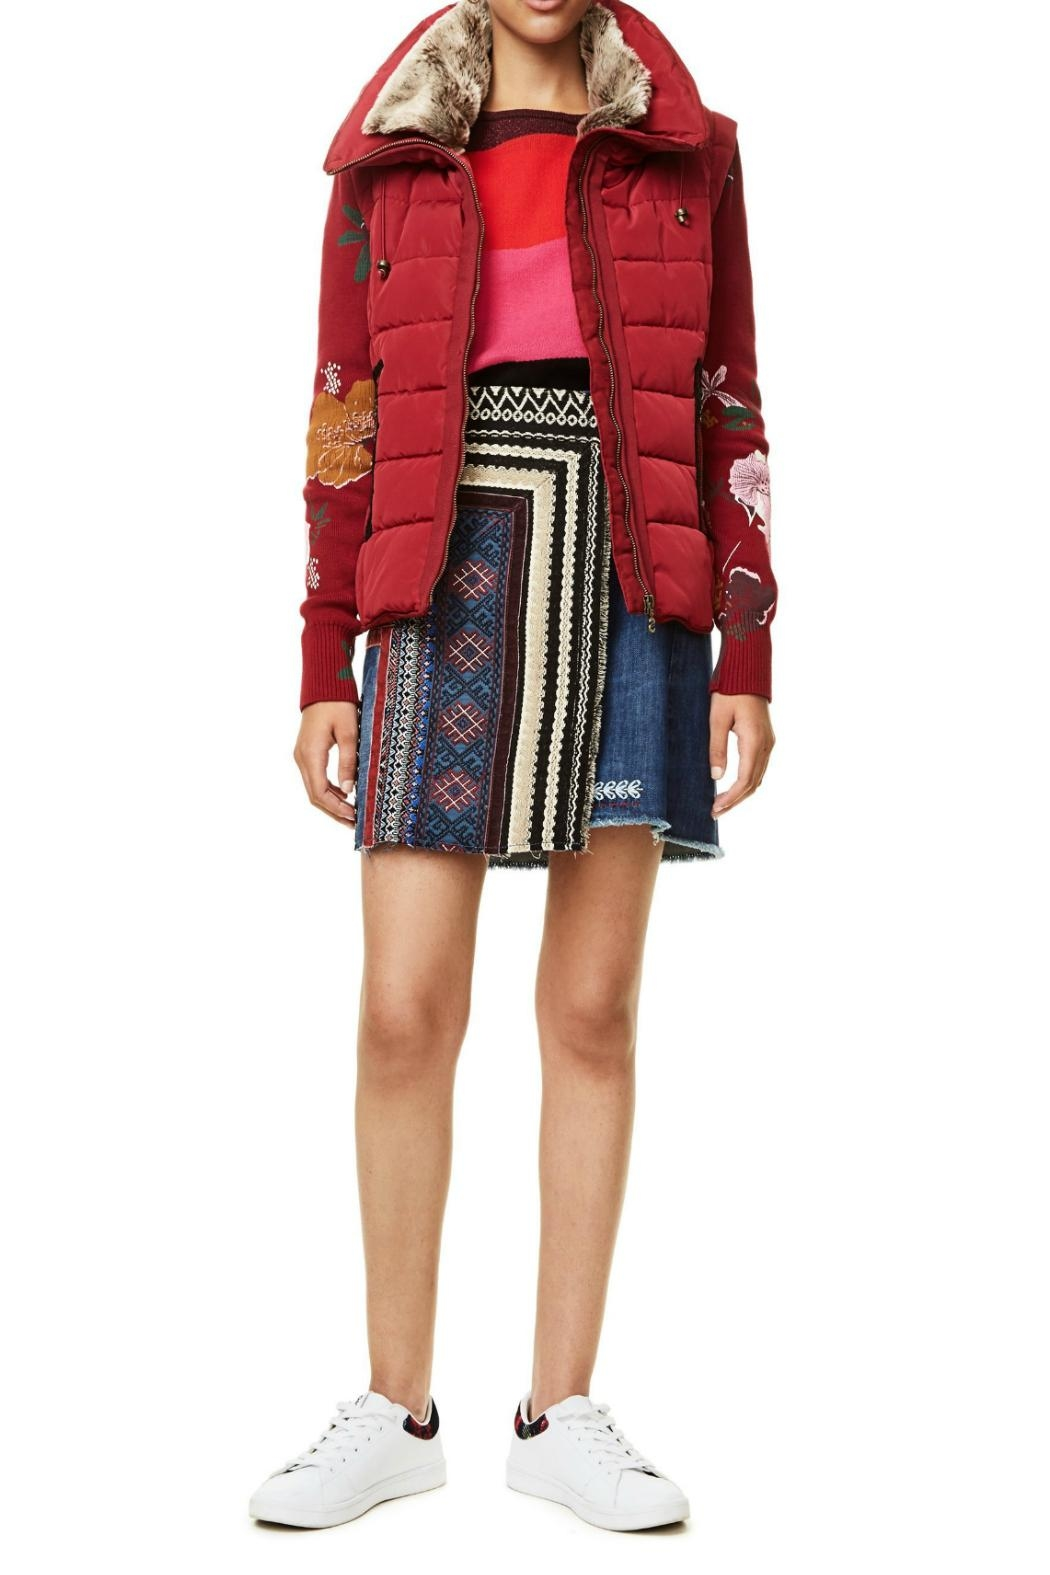 DESIGUAL Emilia Red Jacket - Front Cropped Image